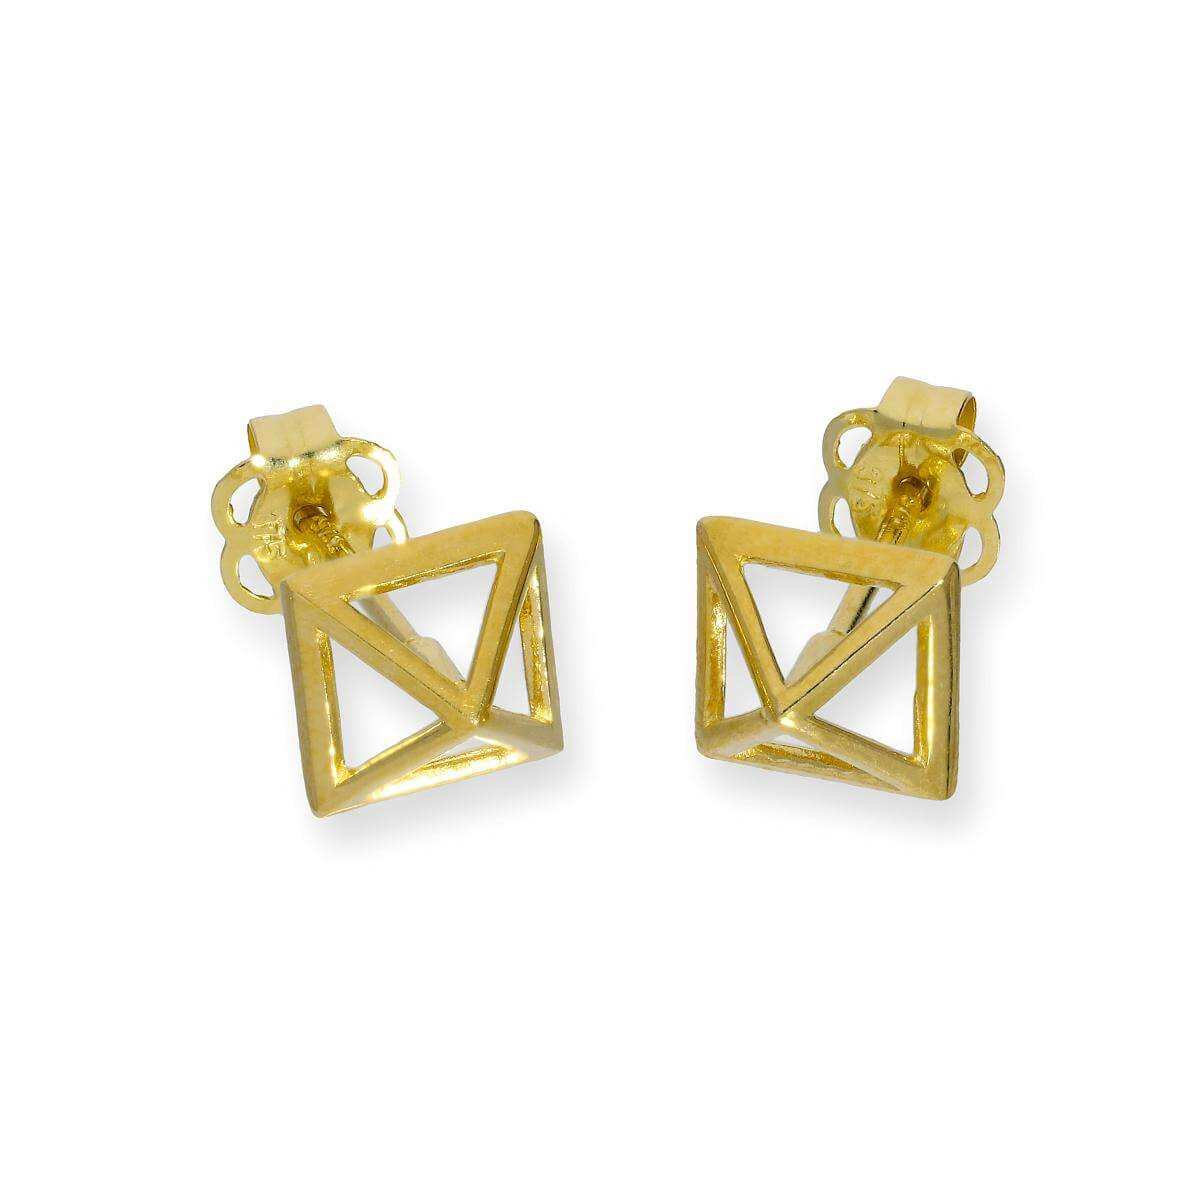 9ct Gold 3D Pyramid Outline Stud Earrings